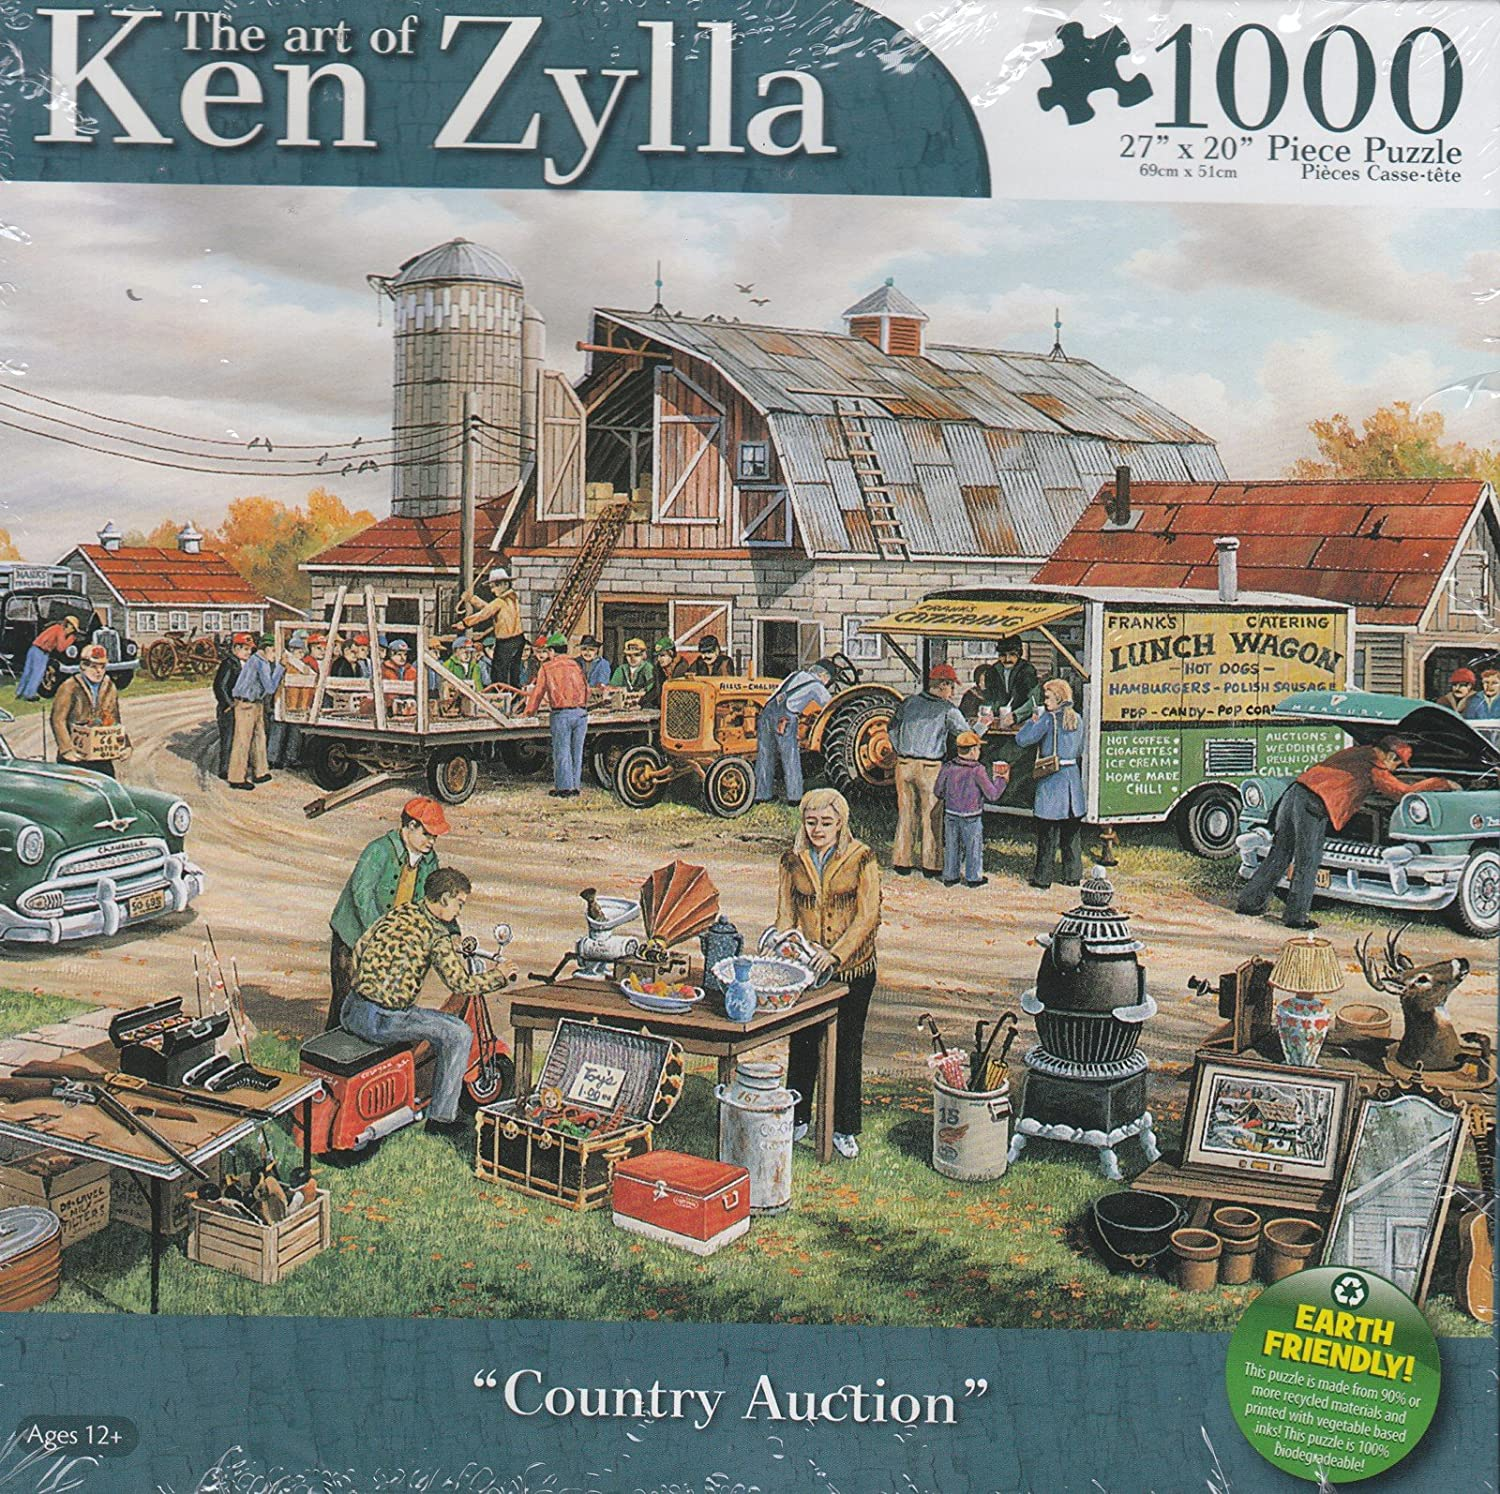 The Art of Ken Zylla Country Auction 1000 Piece Puzzle 27 x 20